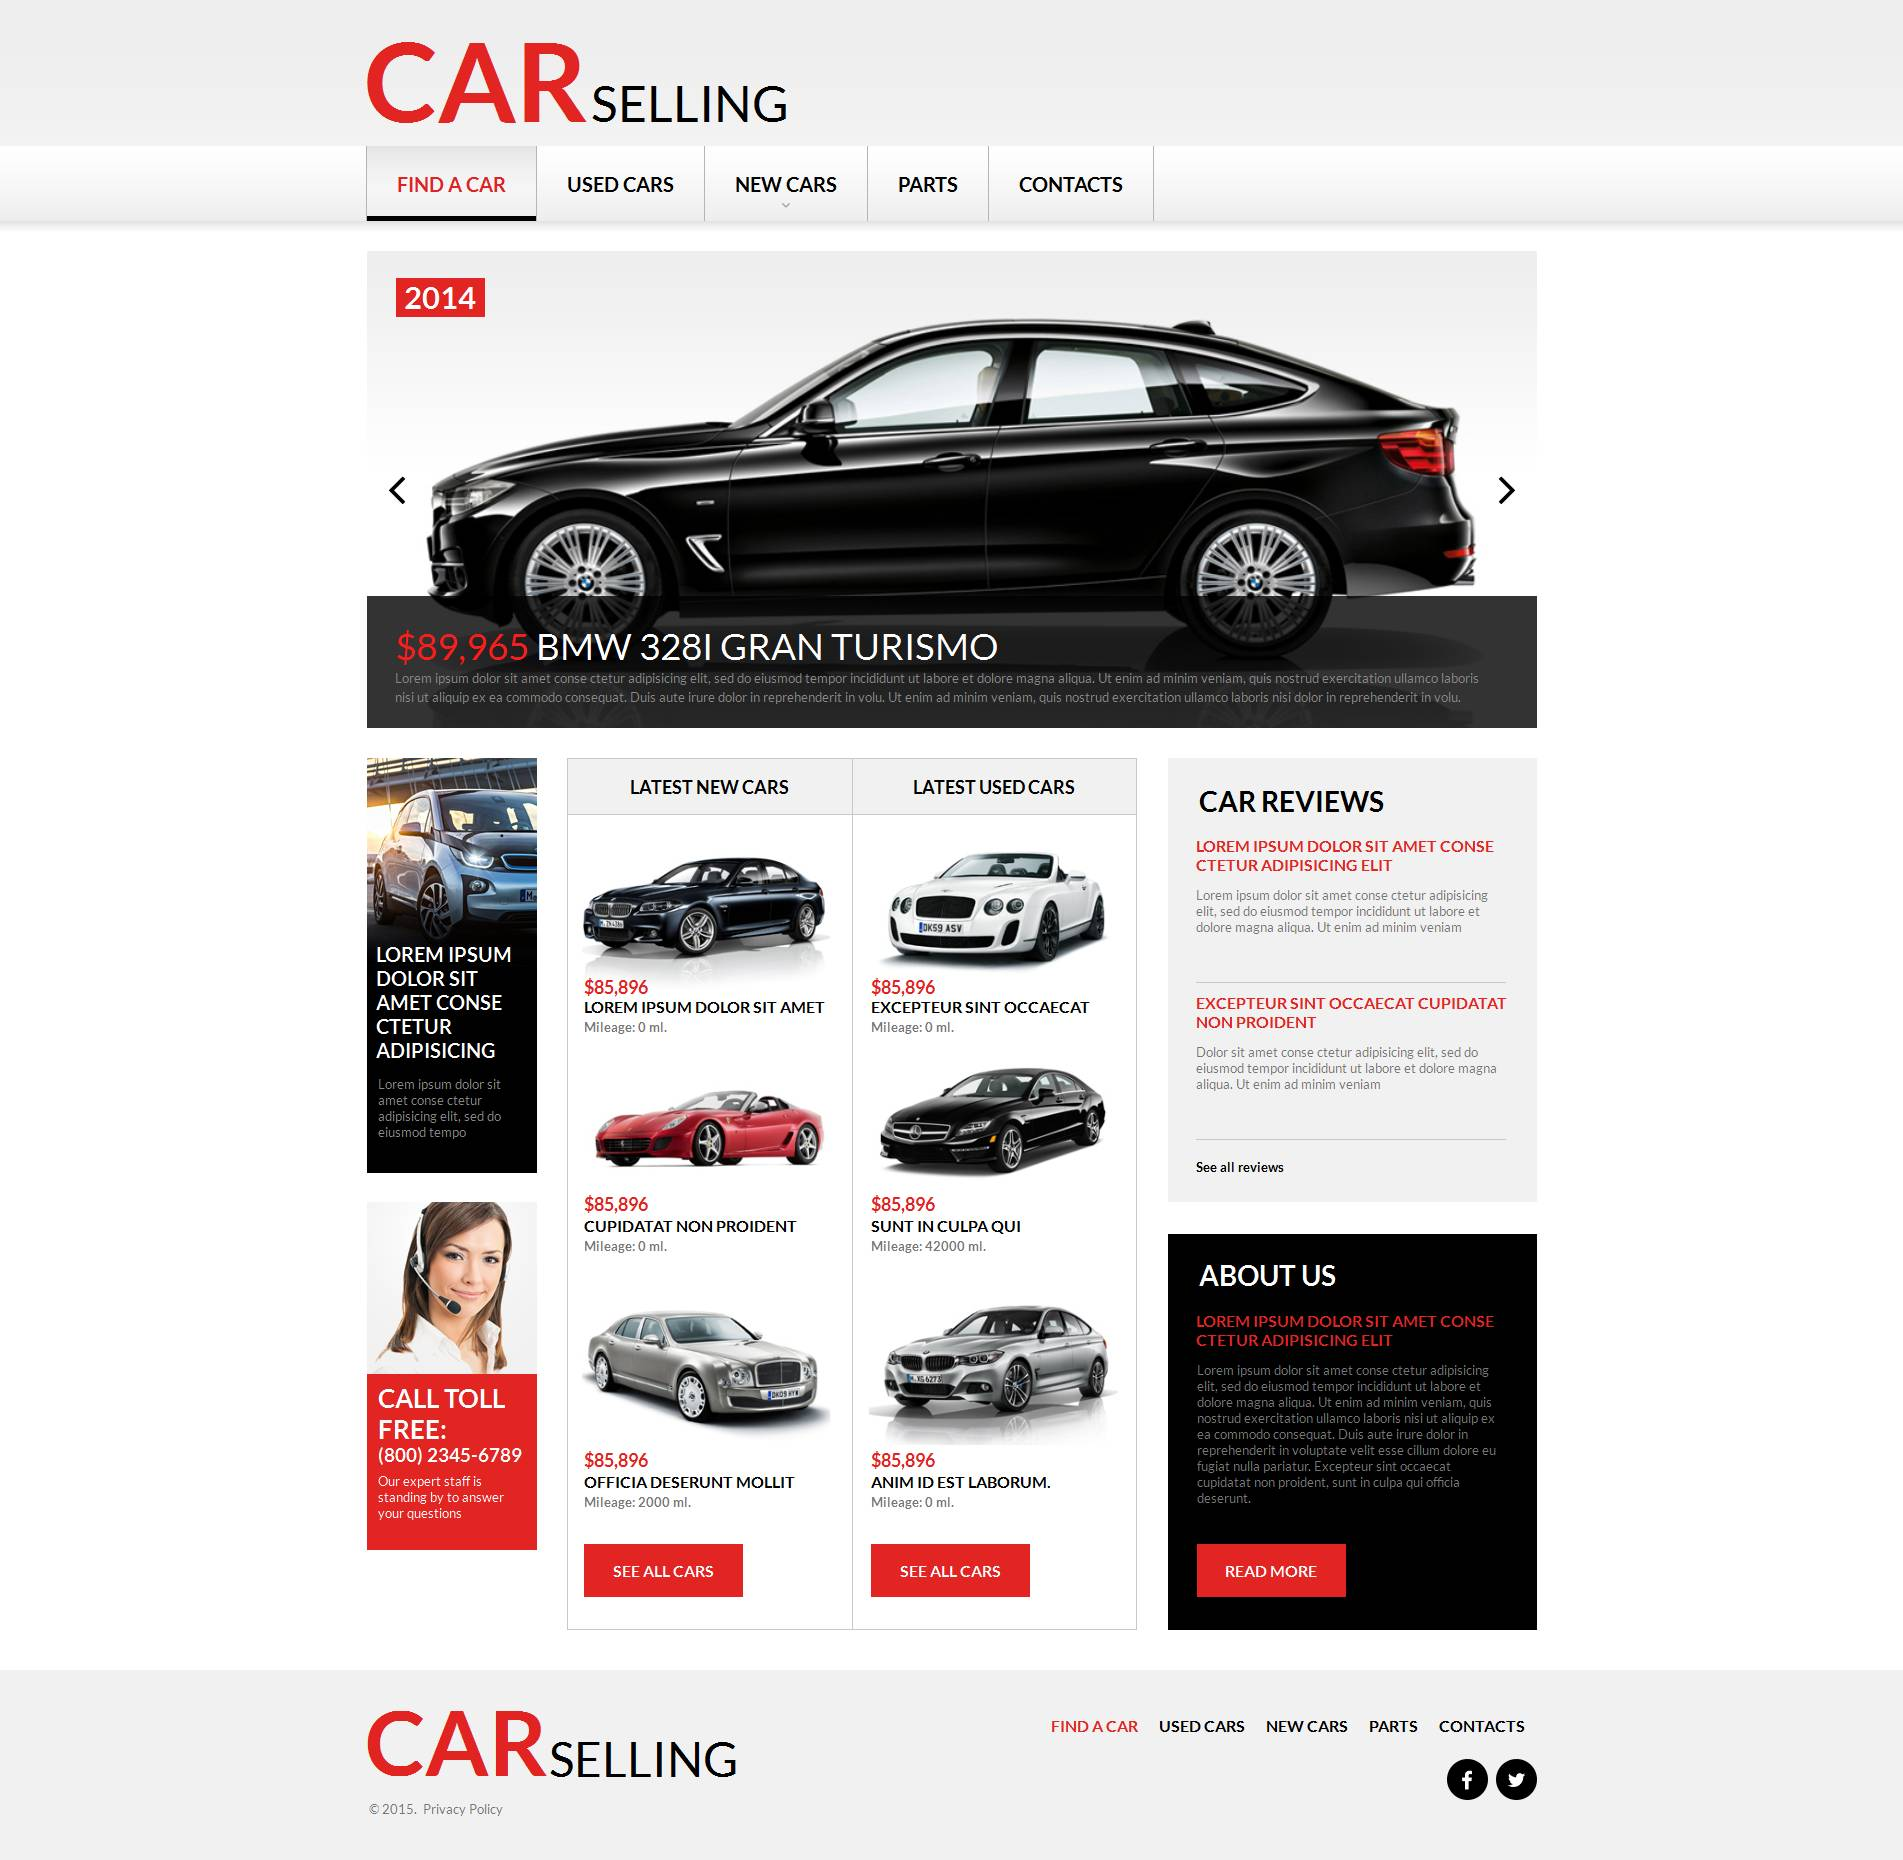 The Cars Market Moto CMS HTML Design 53633, one of the best Moto CMS HTML templates of its kind (cars, most popular), also known as cars market Moto CMS HTML template, rental Moto CMS HTML template, auto dealer Moto CMS HTML template, improvement Moto CMS HTML template, new Moto CMS HTML template, used Moto CMS HTML template, certified Moto CMS HTML template, exhibition solution Moto CMS HTML template, market Moto CMS HTML template, research Moto CMS HTML template, vendor Moto CMS HTML template, motor Moto CMS HTML template, price Moto CMS HTML template, Lexus transport Moto CMS HTML template, speed Moto CMS HTML template, jeep Moto CMS HTML template, ford Moto CMS HTML template, Audi Volvo Mercedes driving Moto CMS HTML template, off-road Moto CMS HTML template, racing Moto CMS HTML template, driver Moto CMS HTML template, track Moto CMS HTML template, race Moto CMS HTML template, urban Moto CMS HTML template, freeway Moto CMS HTML template, highway Moto CMS HTML template, road Moto CMS HTML template, vehicle Moto CMS HTML template, Porsche BMW spar and related with cars market, rental, auto dealer, improvement, new, used, certified, exhibition solution, market, research, vendor, motor, price, Lexus transport, speed, jeep, ford, Audi Volvo Mercedes driving, off-road, racing, driver, track, race, urban, freeway, highway, road, vehicle, Porsche BMW spar, etc.